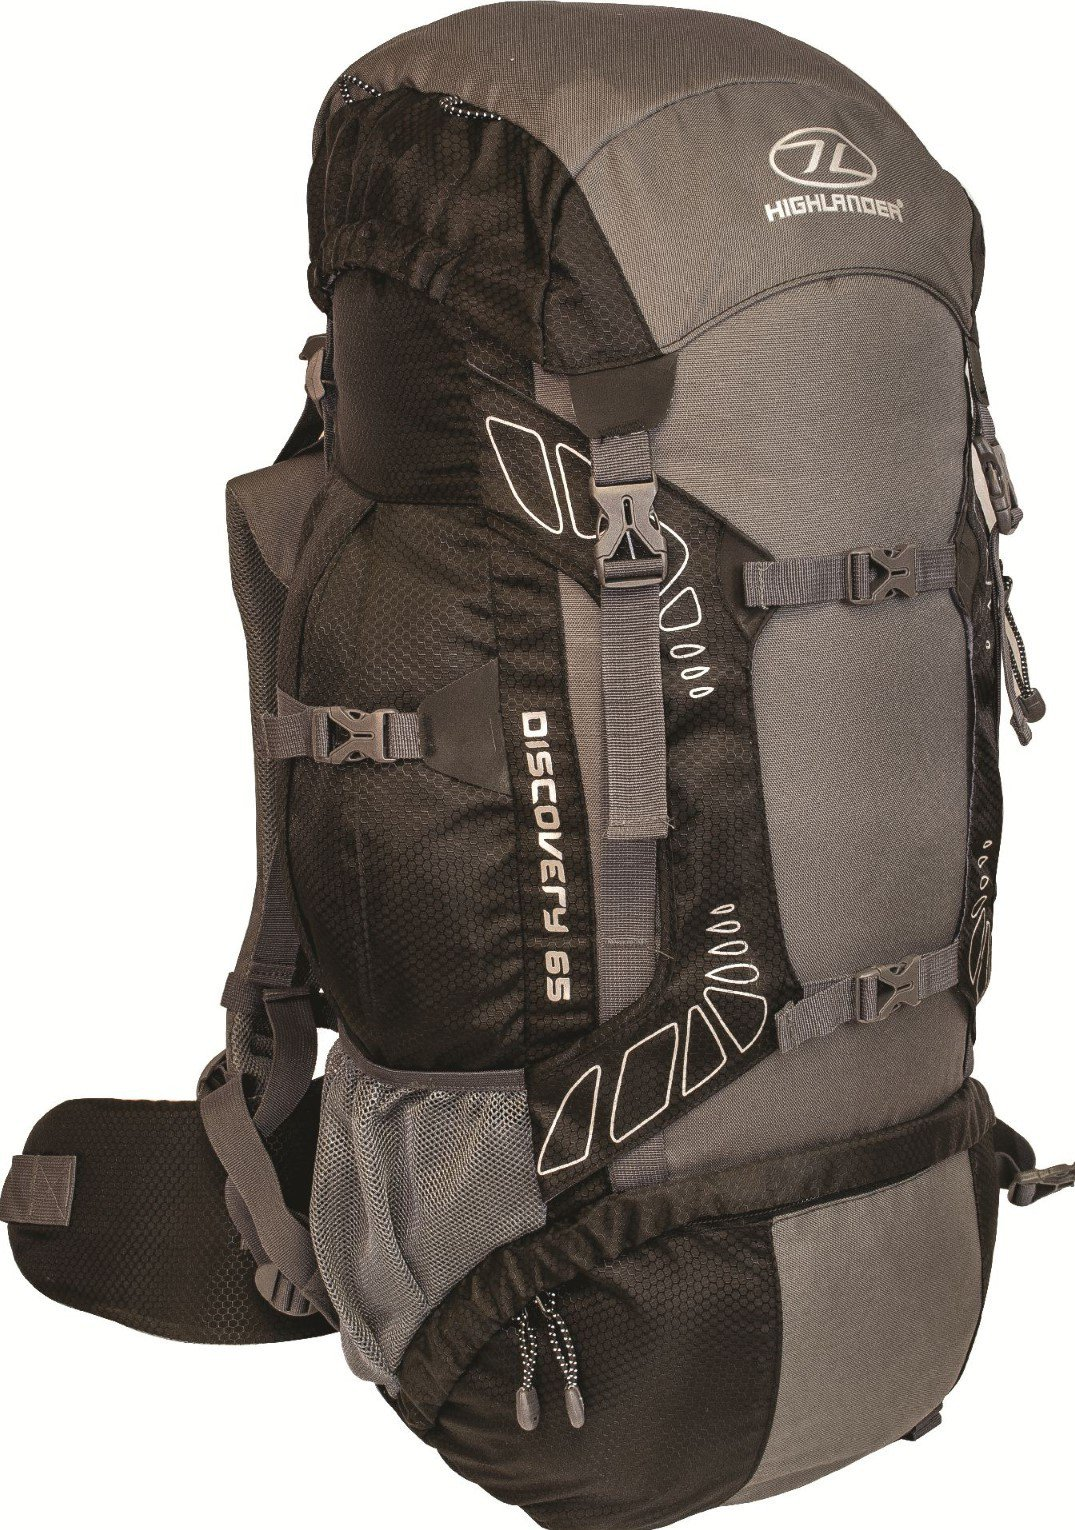 ... Discovery 65 backpack kopen? : rugzak-experts.nl : experty